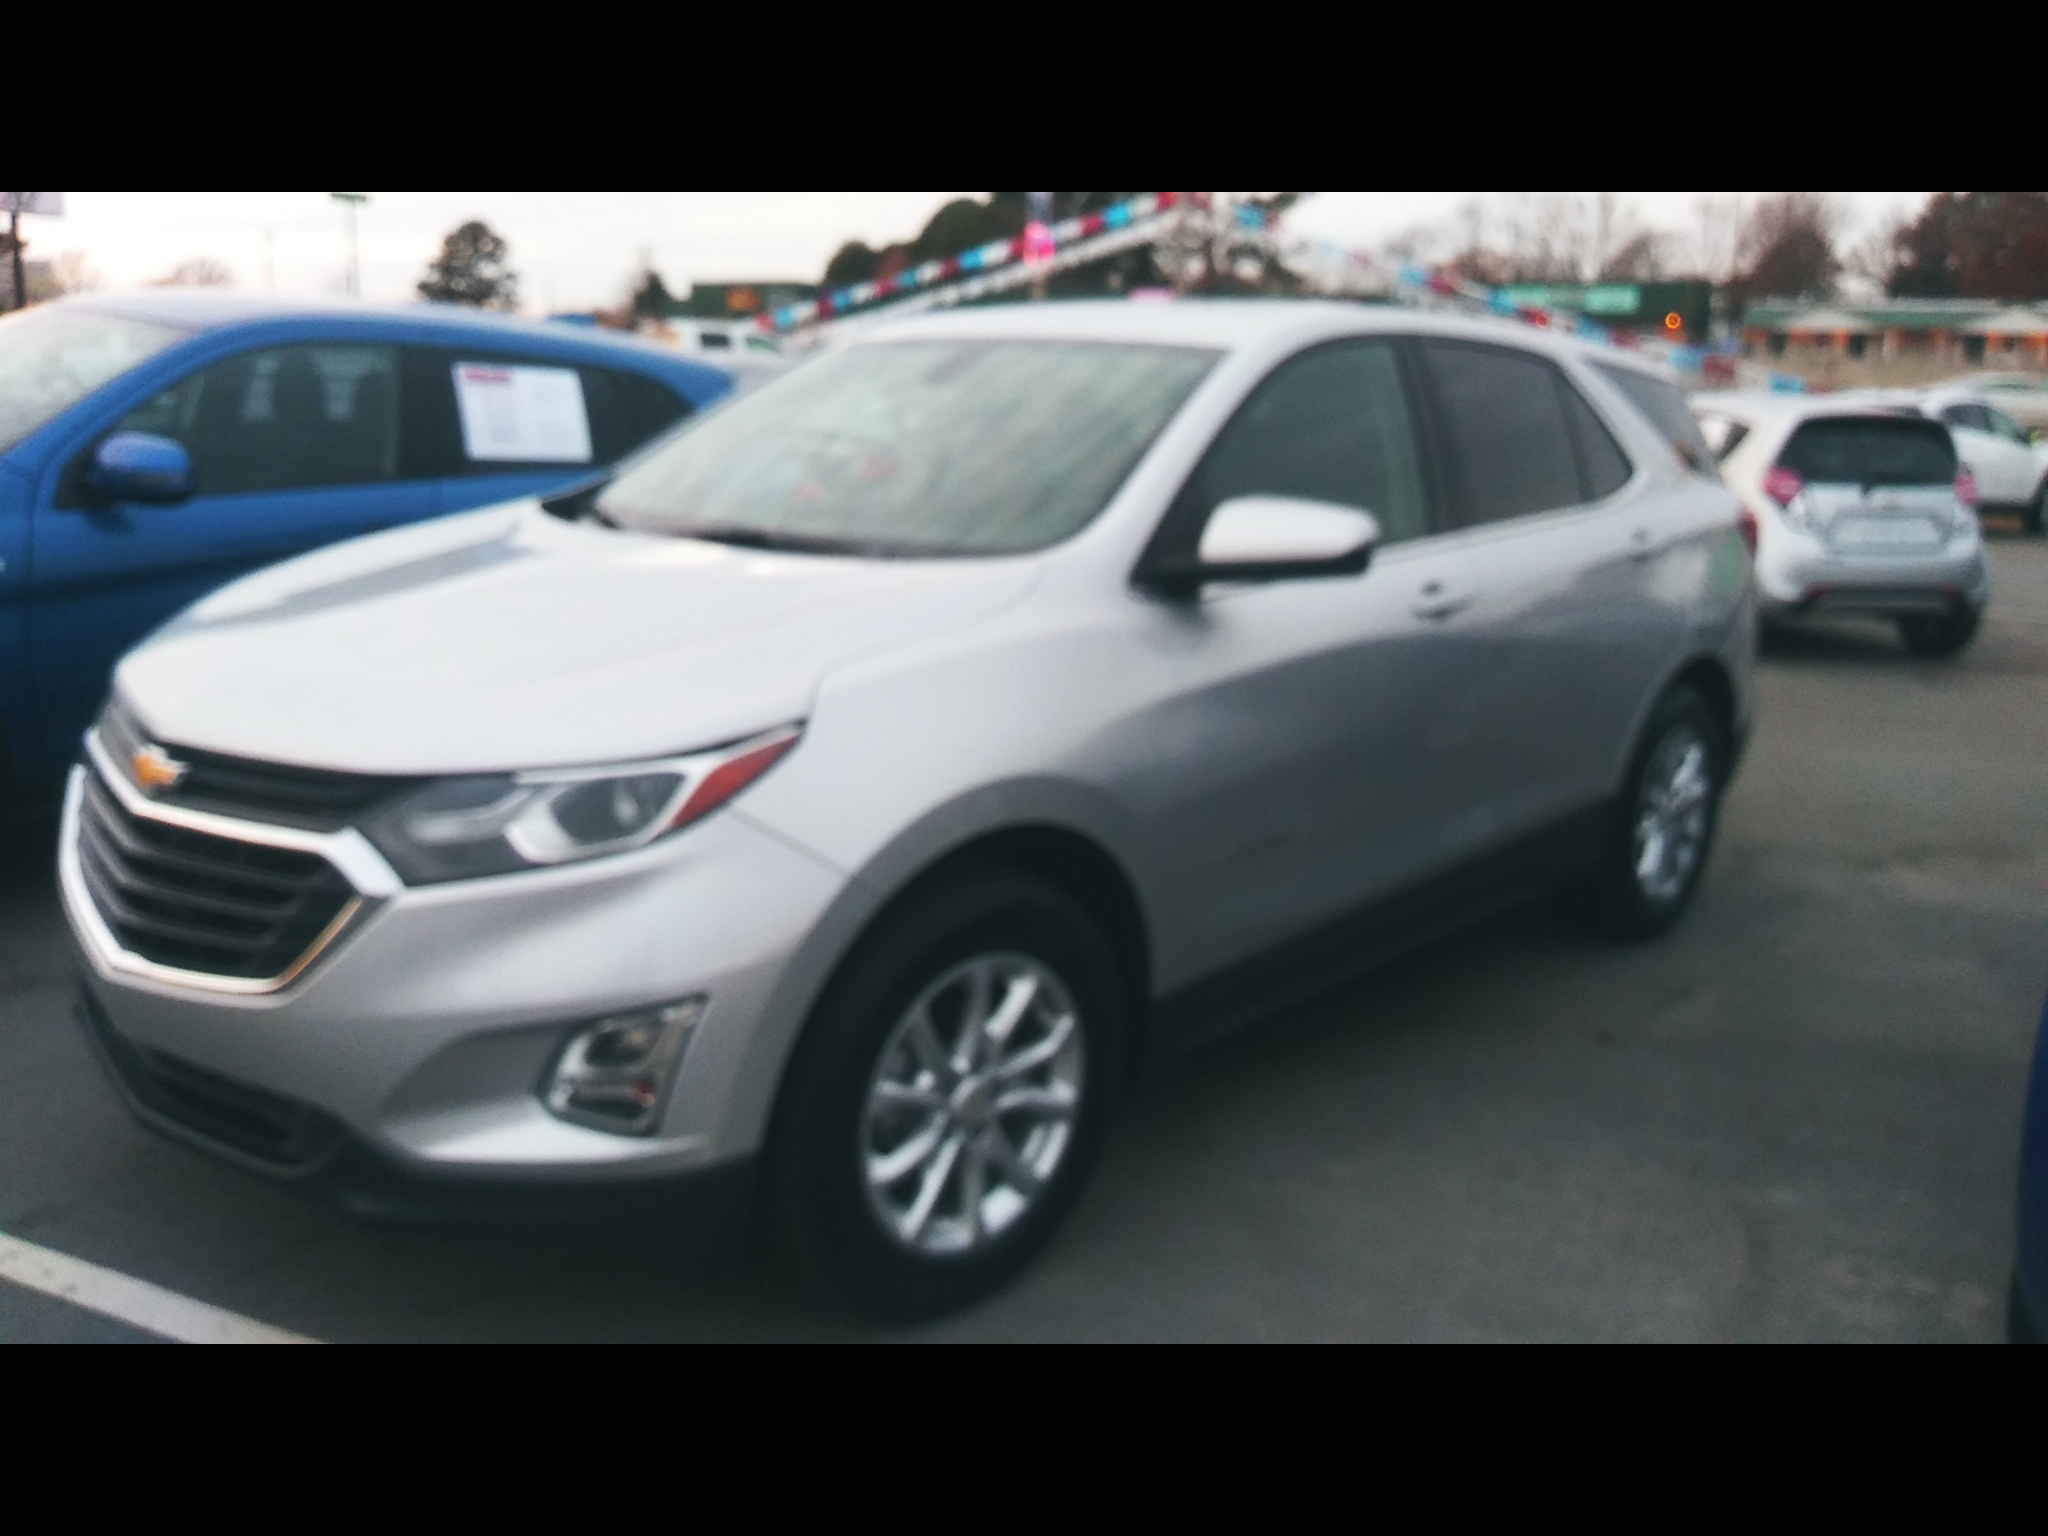 City Motors Jacksonville Ar >> Used Cars For Sale Jacksonville Little Rock Ar 72076 City